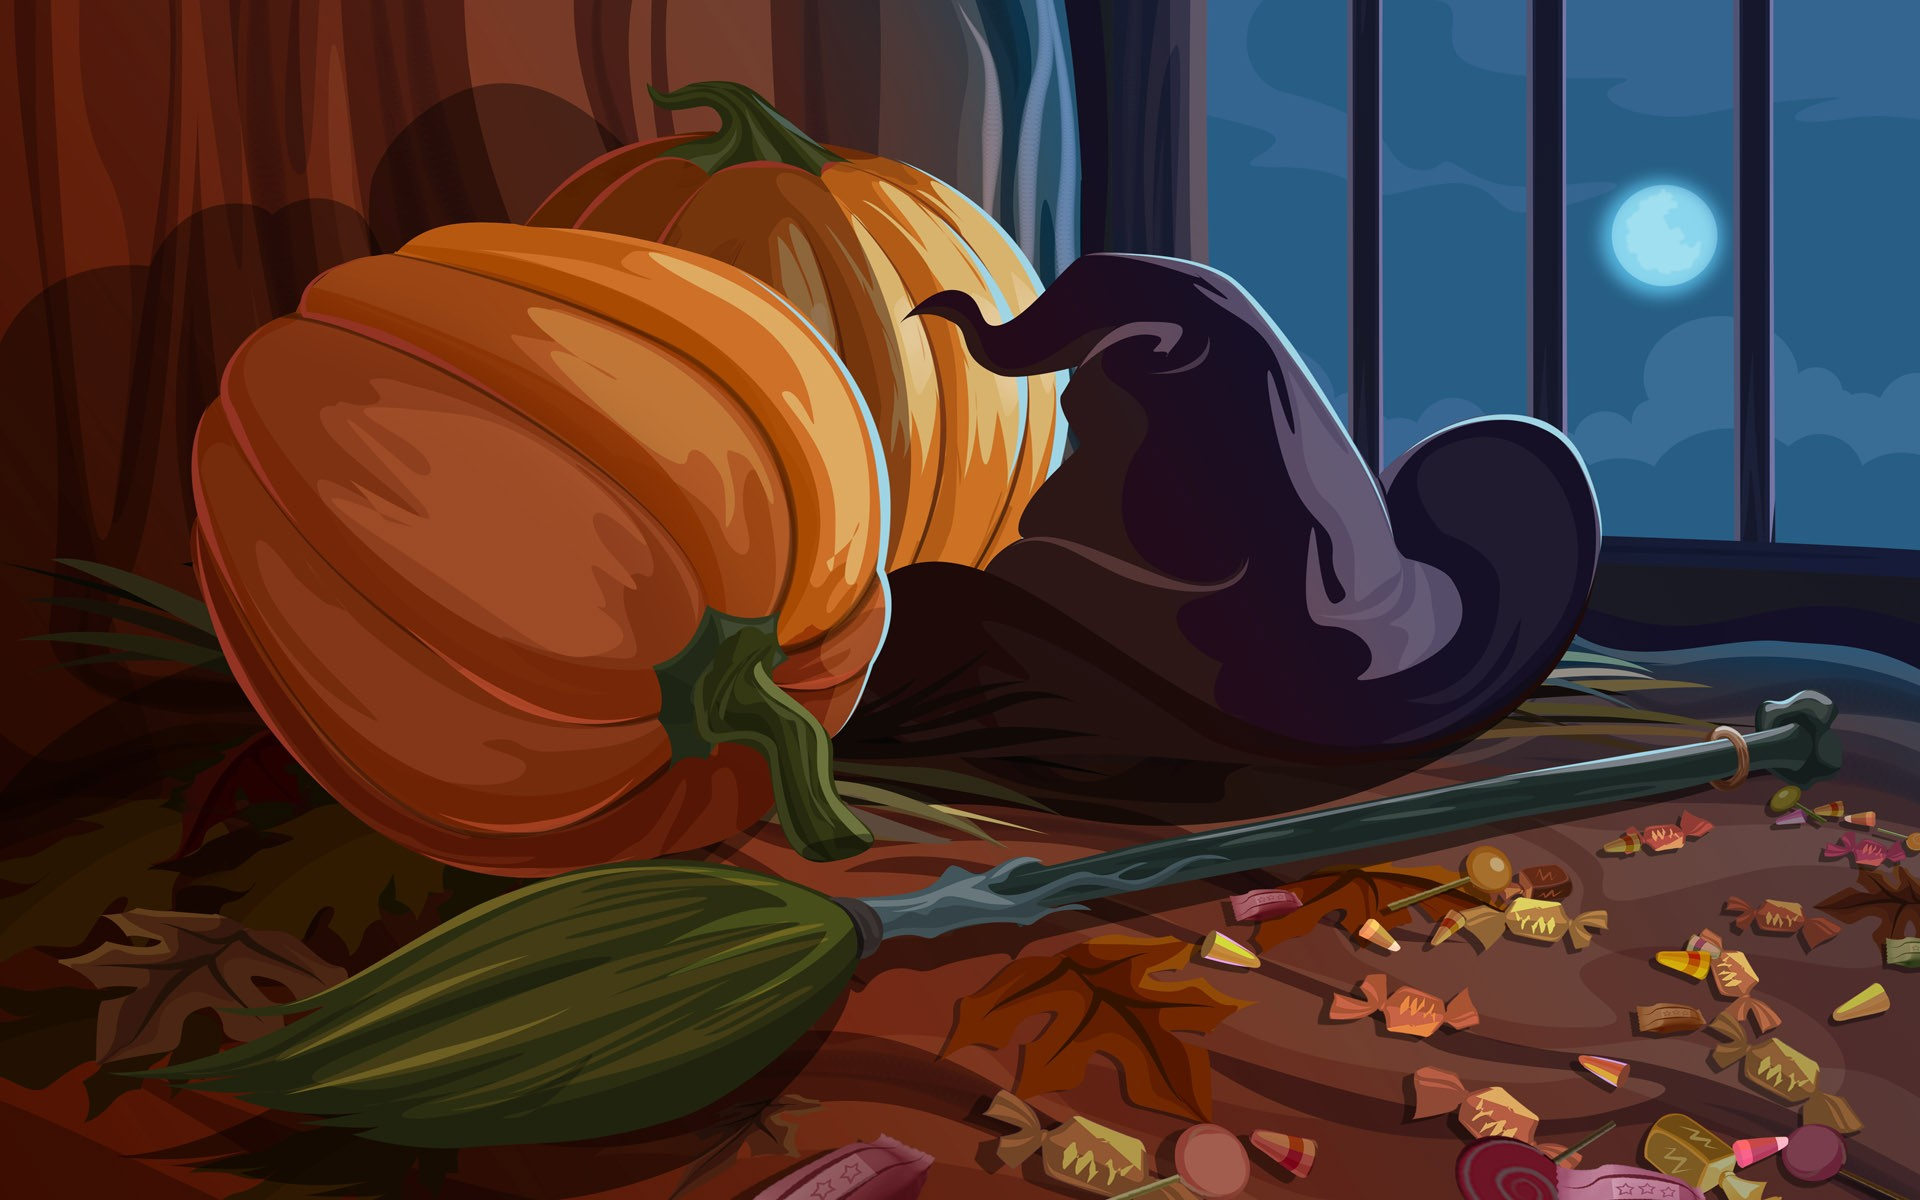 Two pumpkin and witch hat, wallpapers for prazlniku Haloween